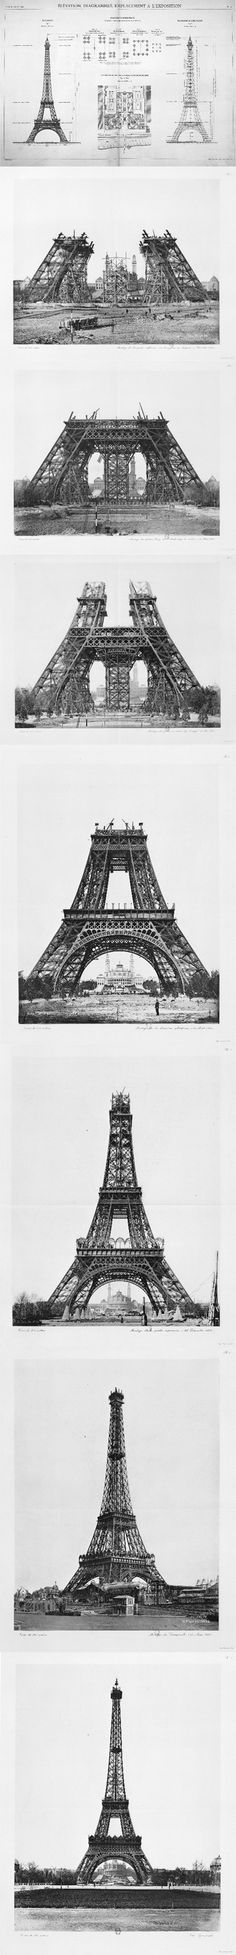 «La Tour Eiffel» – Paris, 1887